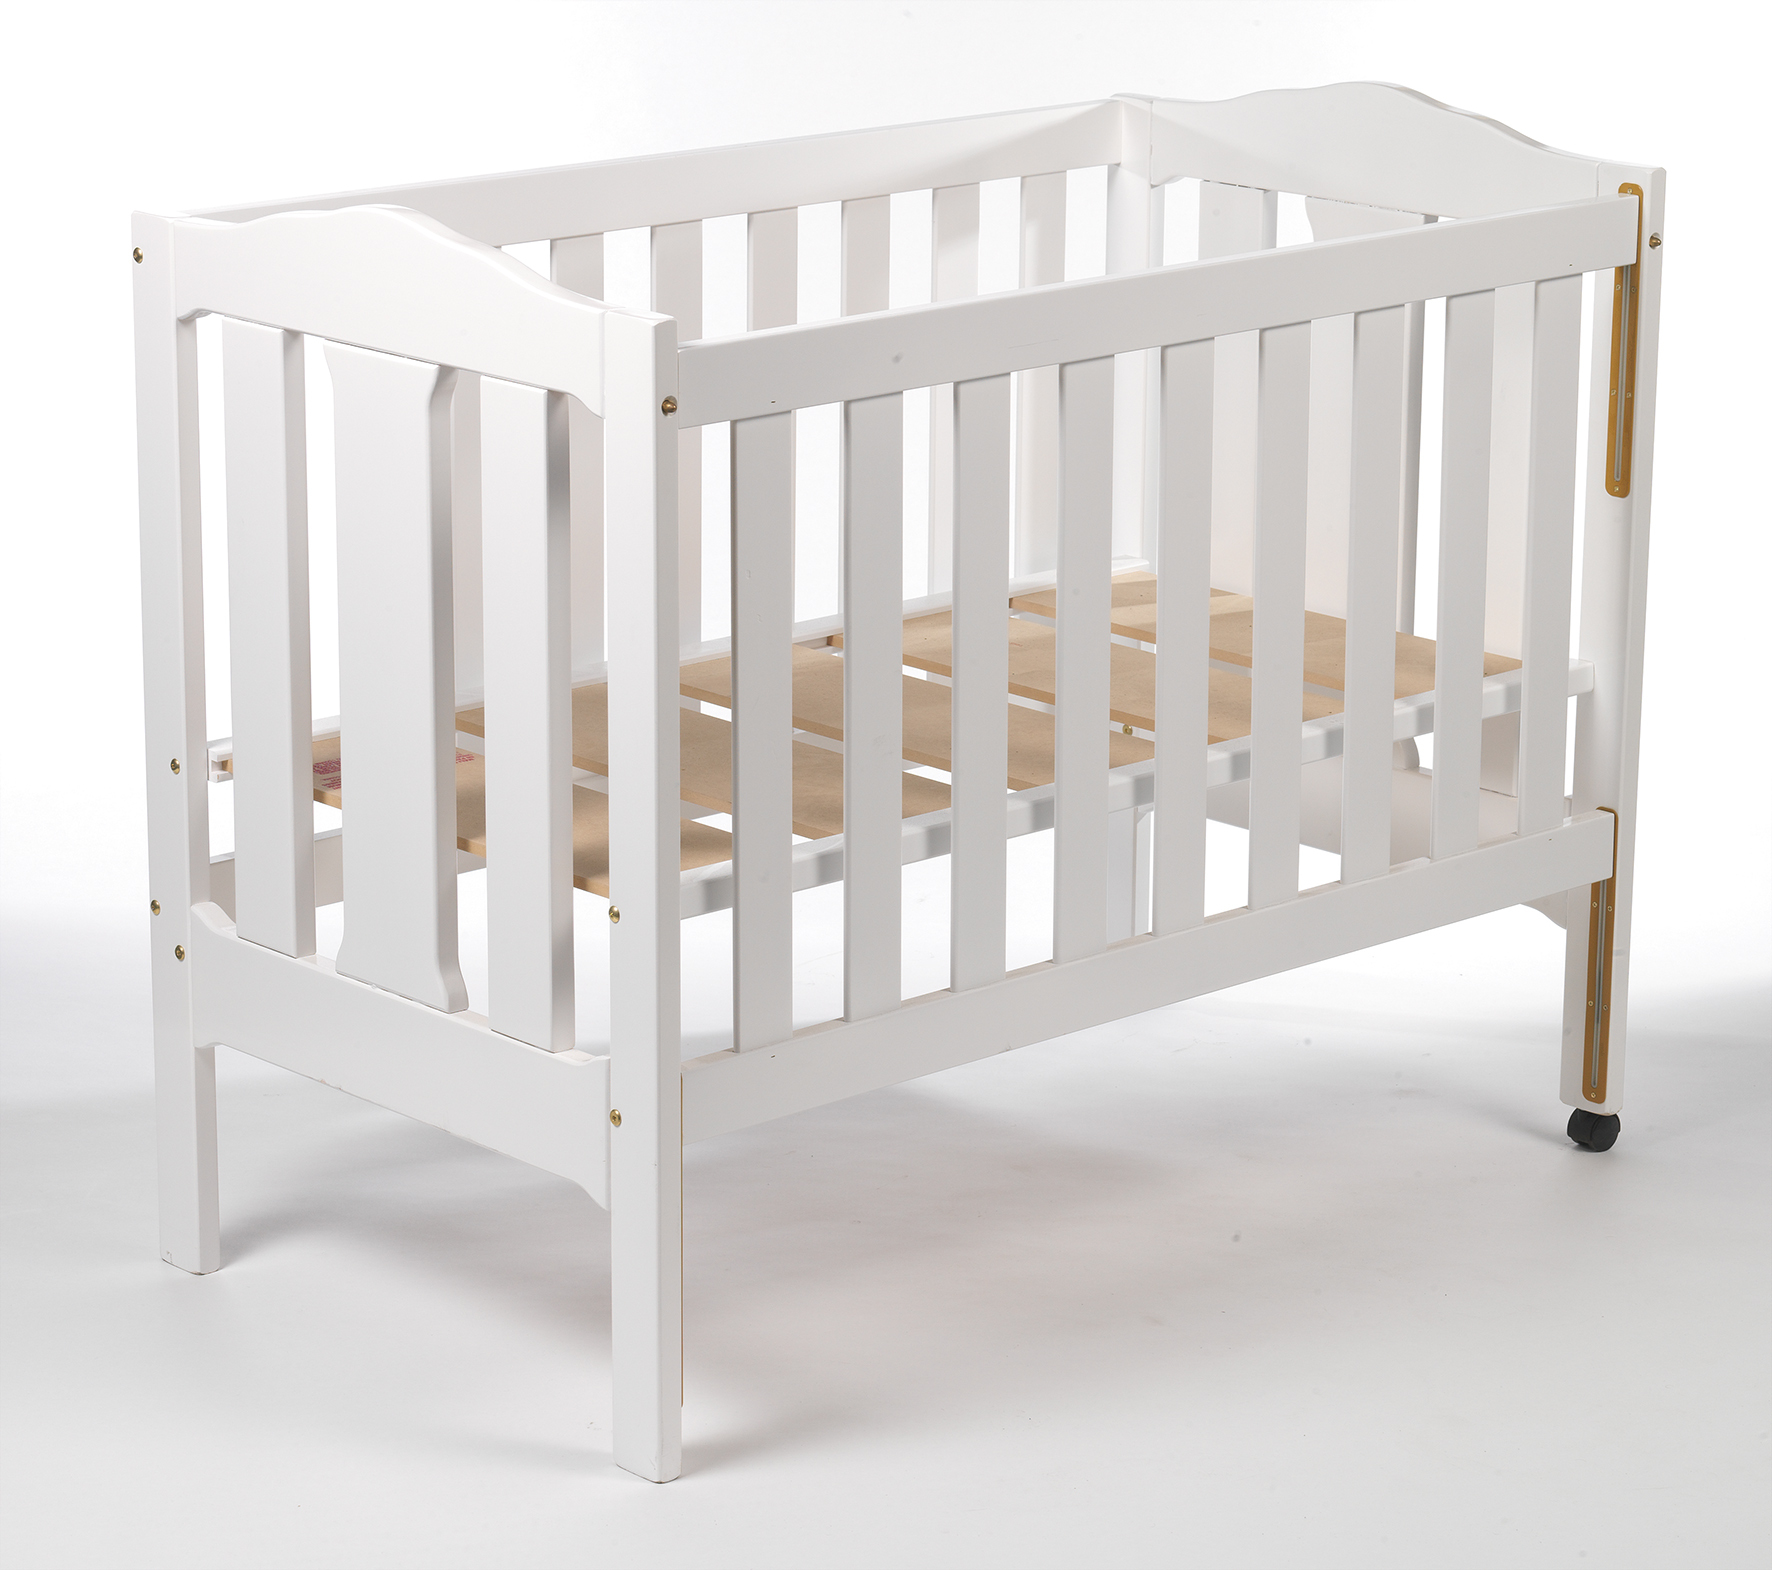 Safe sleeping place for small children: Cribs with side protection